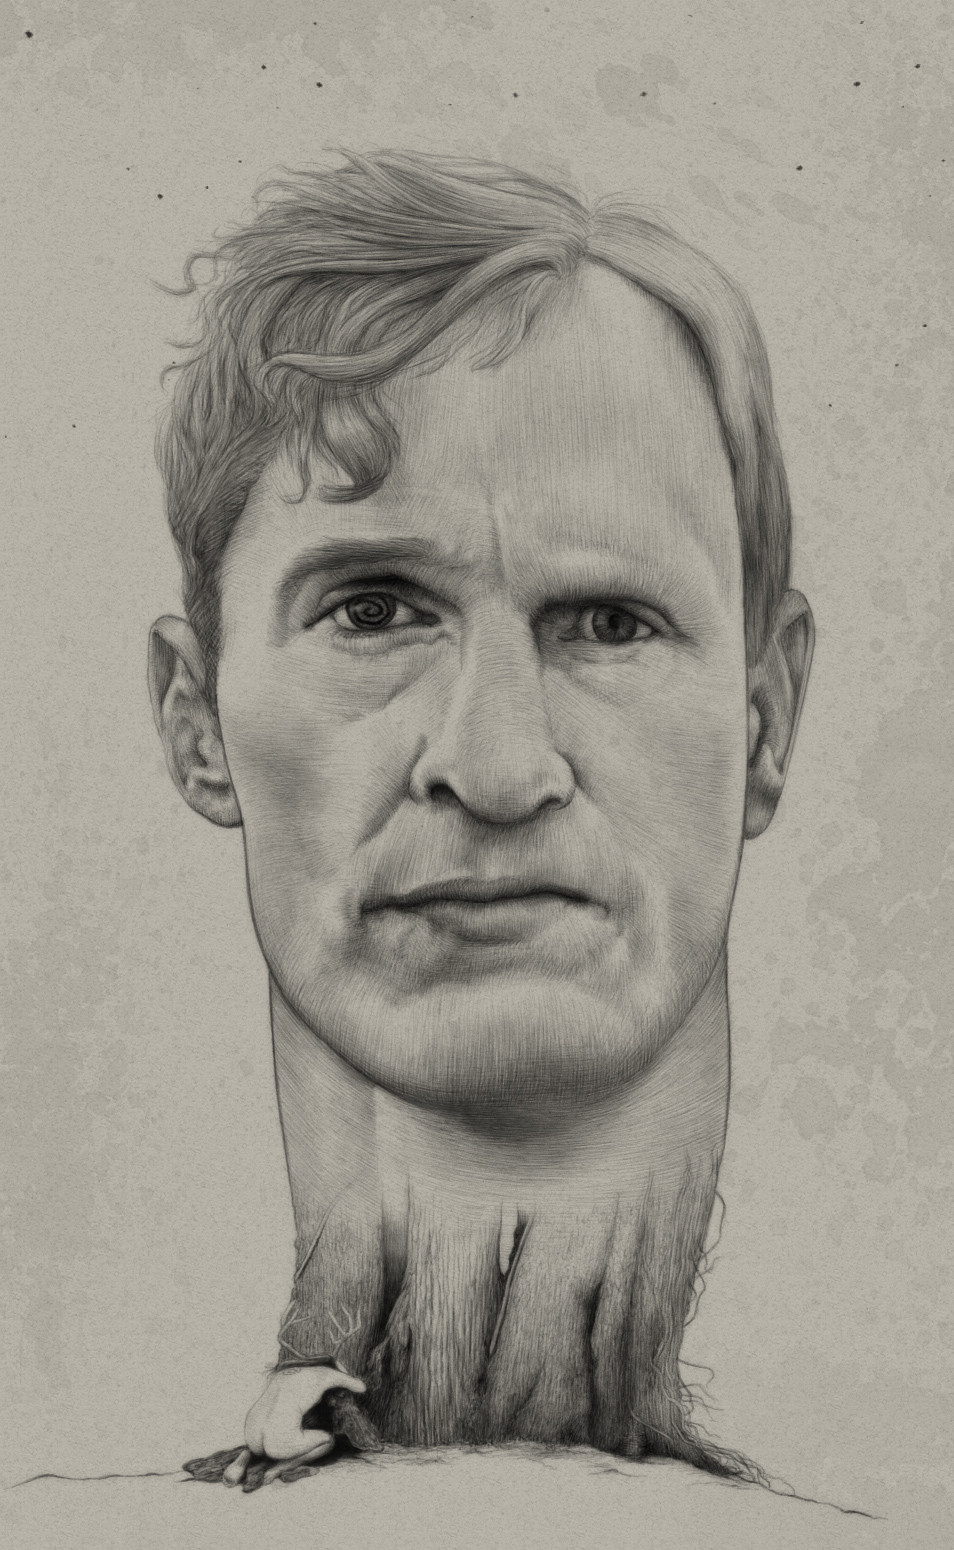 Rust Hart True Detective fan art soletopia